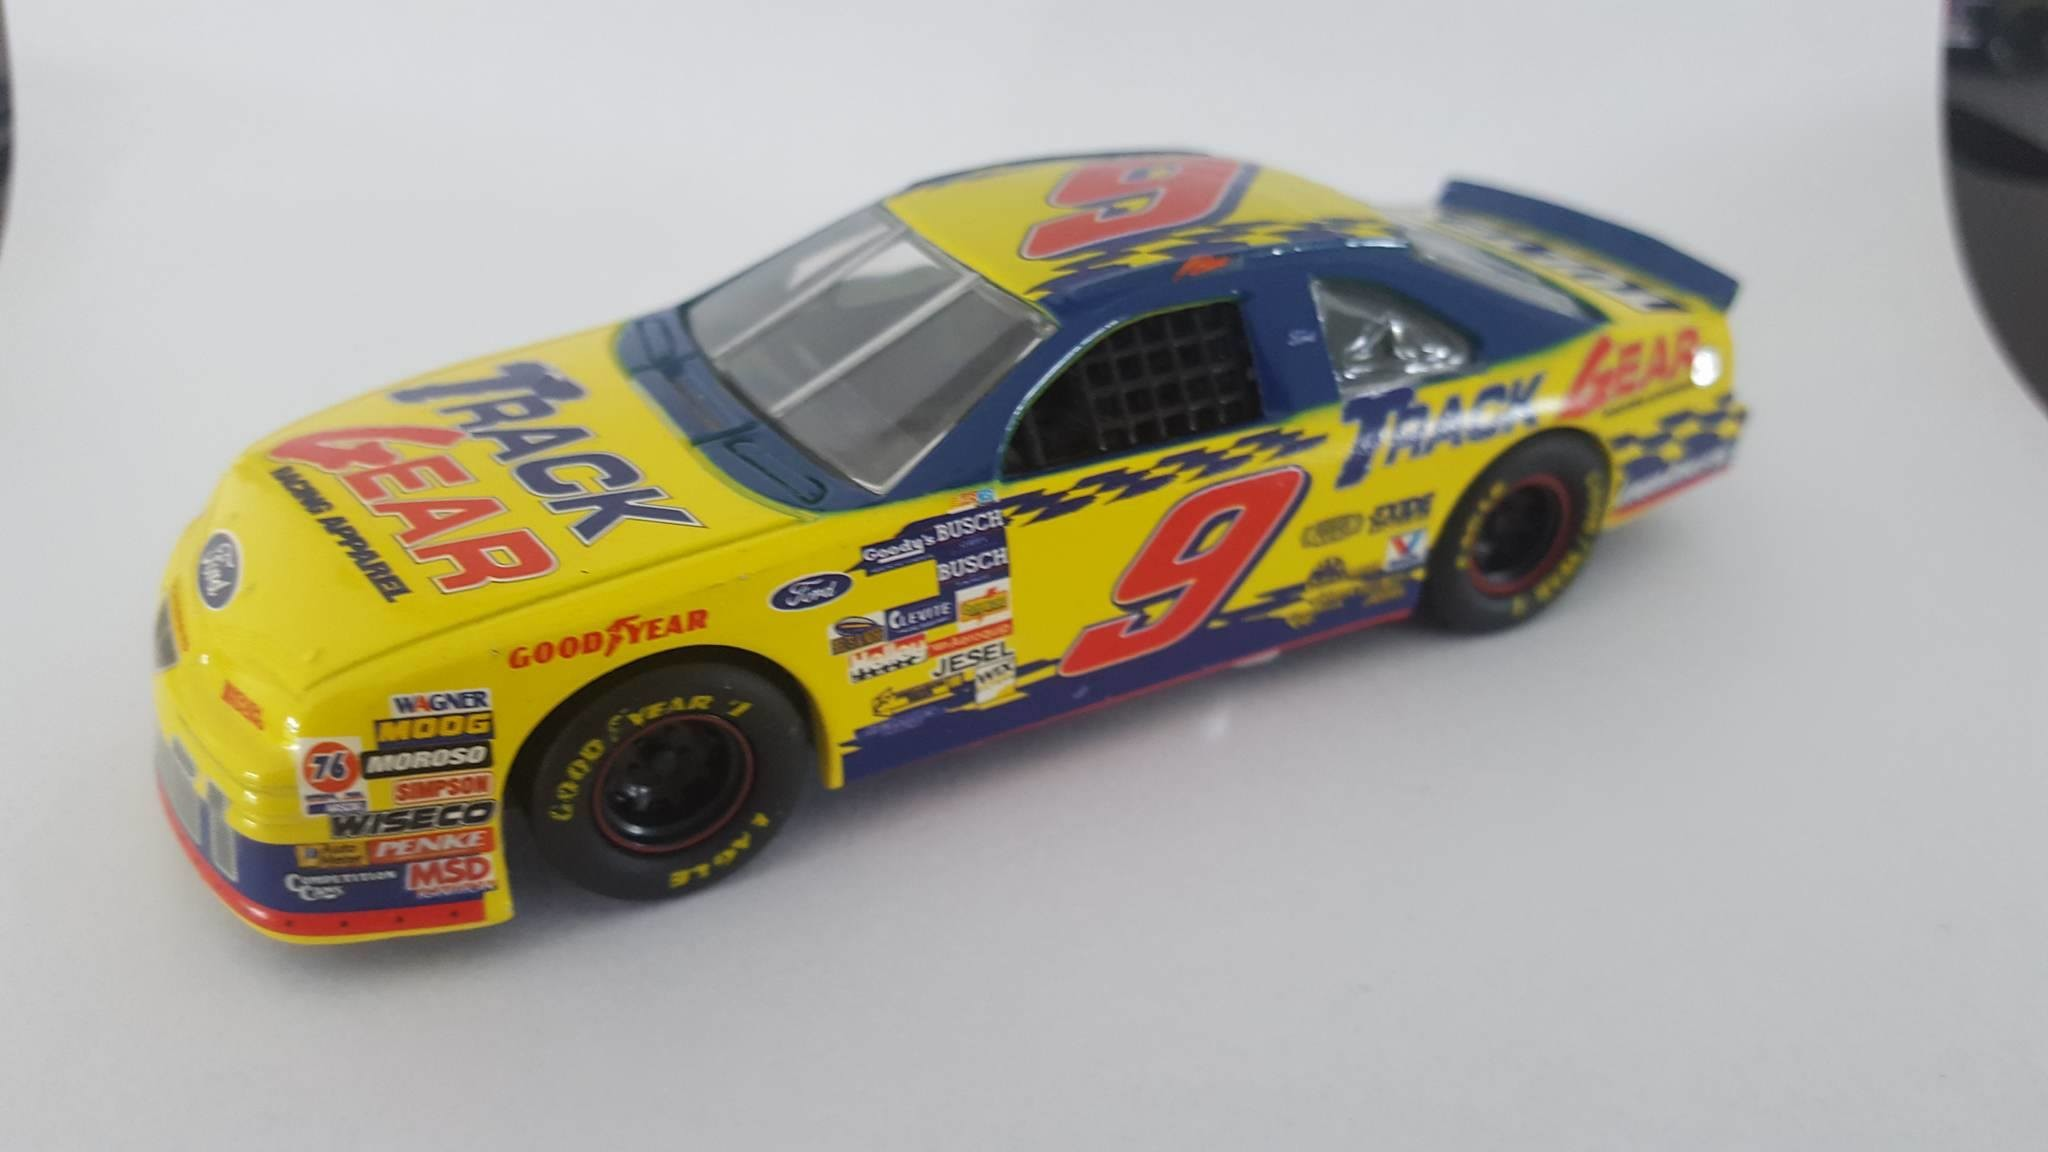 1997 - Ford Thunderbird - #9 - Track Gear - Jeff Burton